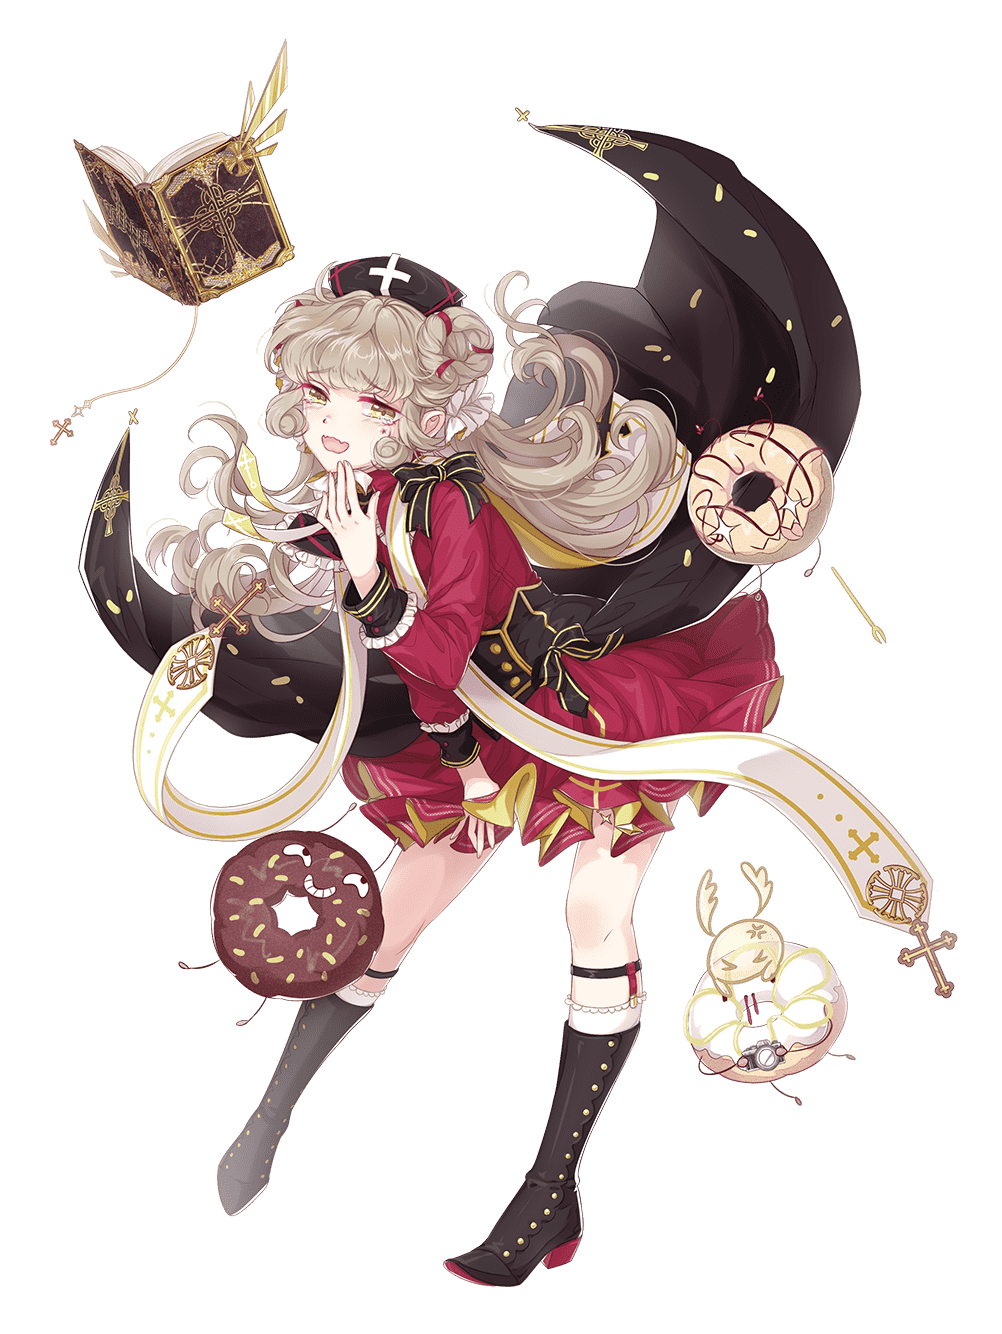 https://vignette.wikia.nocookie.net/food-fantasy/images/6/66/Ascended-Donut.png/revision/latest?cb=20190109110906